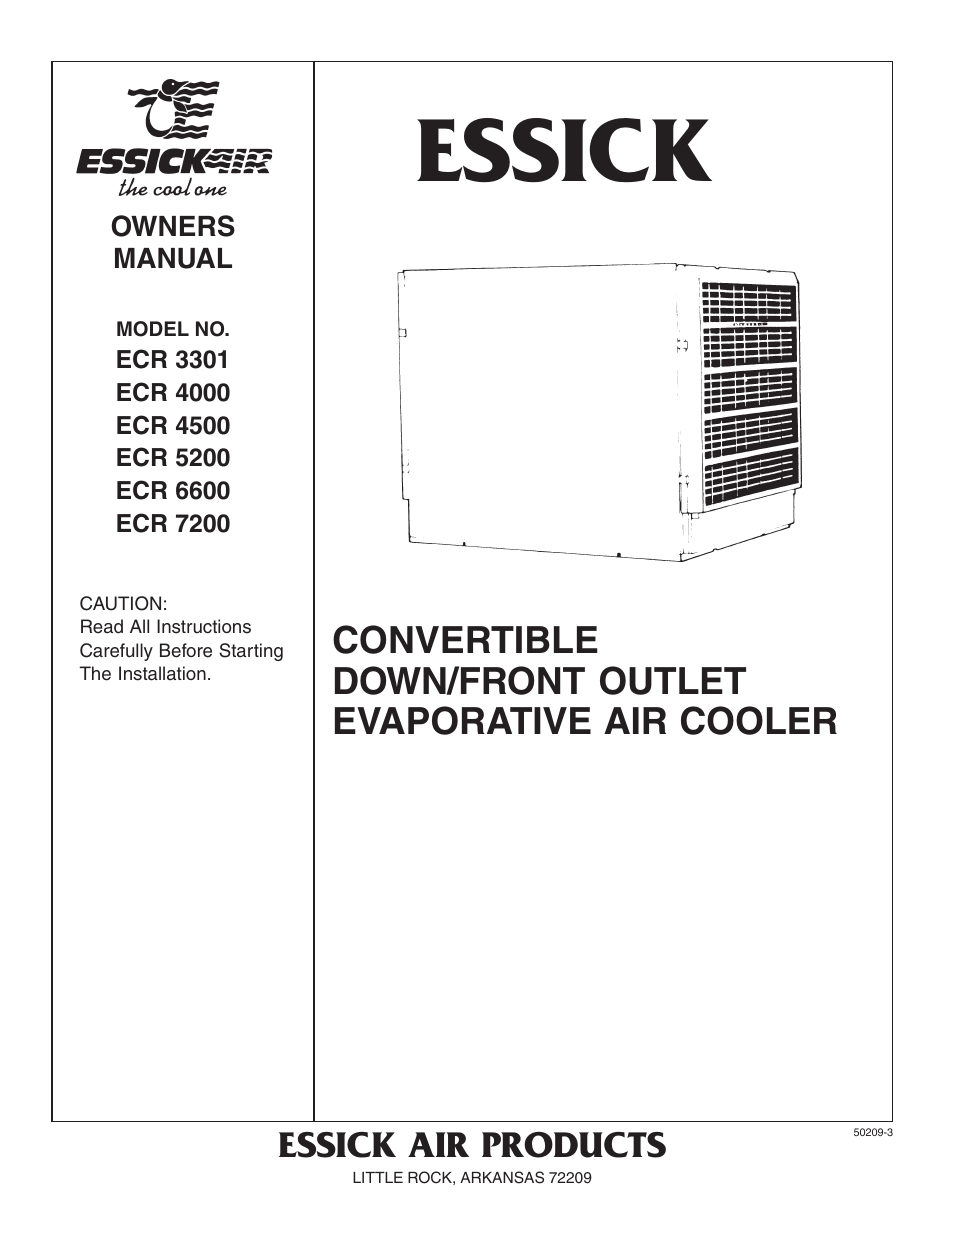 essick air ecr 7200 user manual 16 pages also for ecr Dell 5200 Printer Driver Dell 5200 Printer Manual